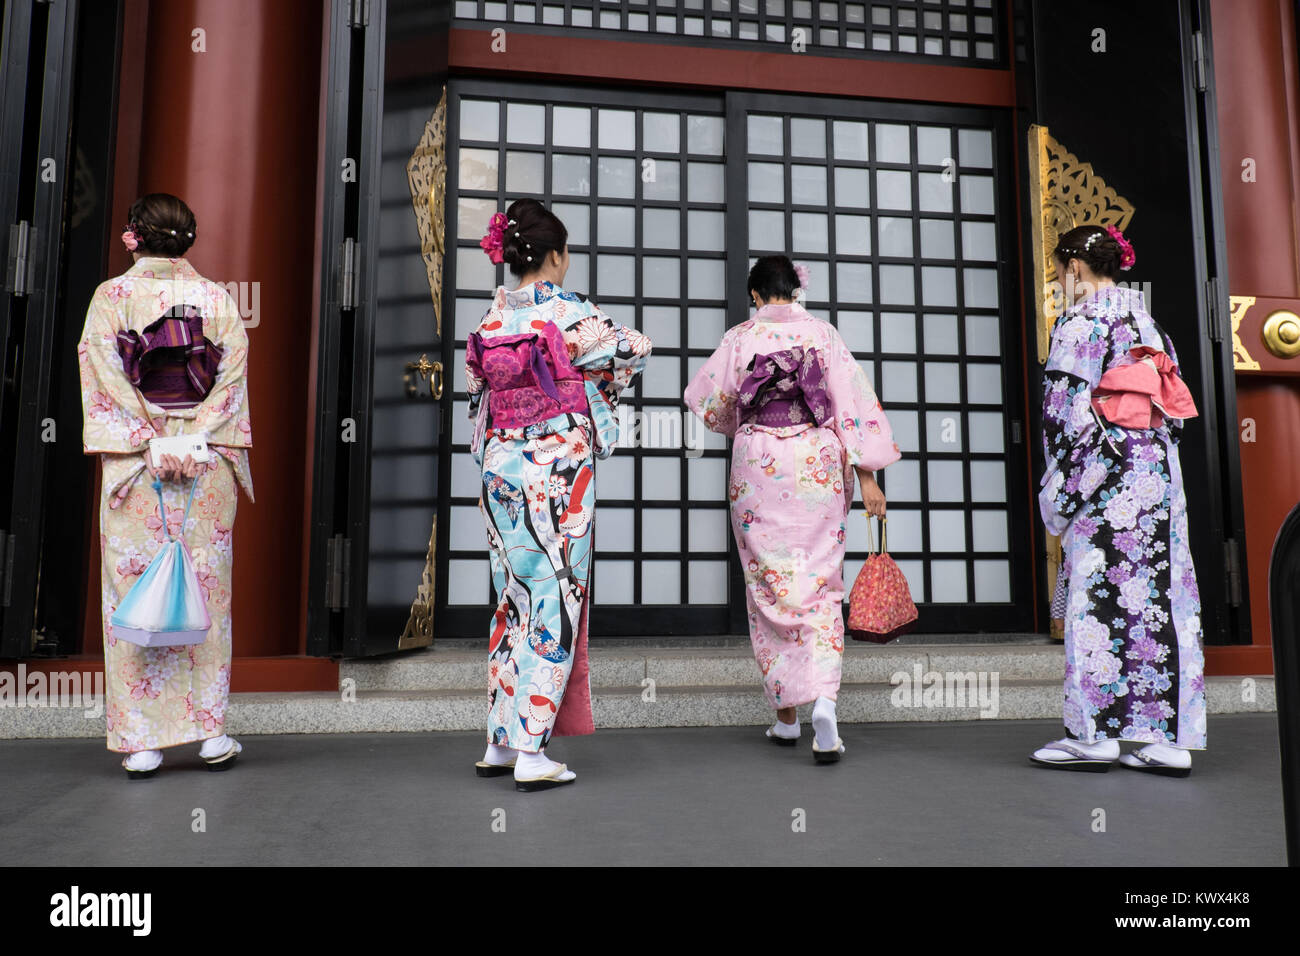 Japan, Tokyo, Honshu Island: tourists wearing traditional Japanese clothes, here in front of a door of the Senso - Stock Image